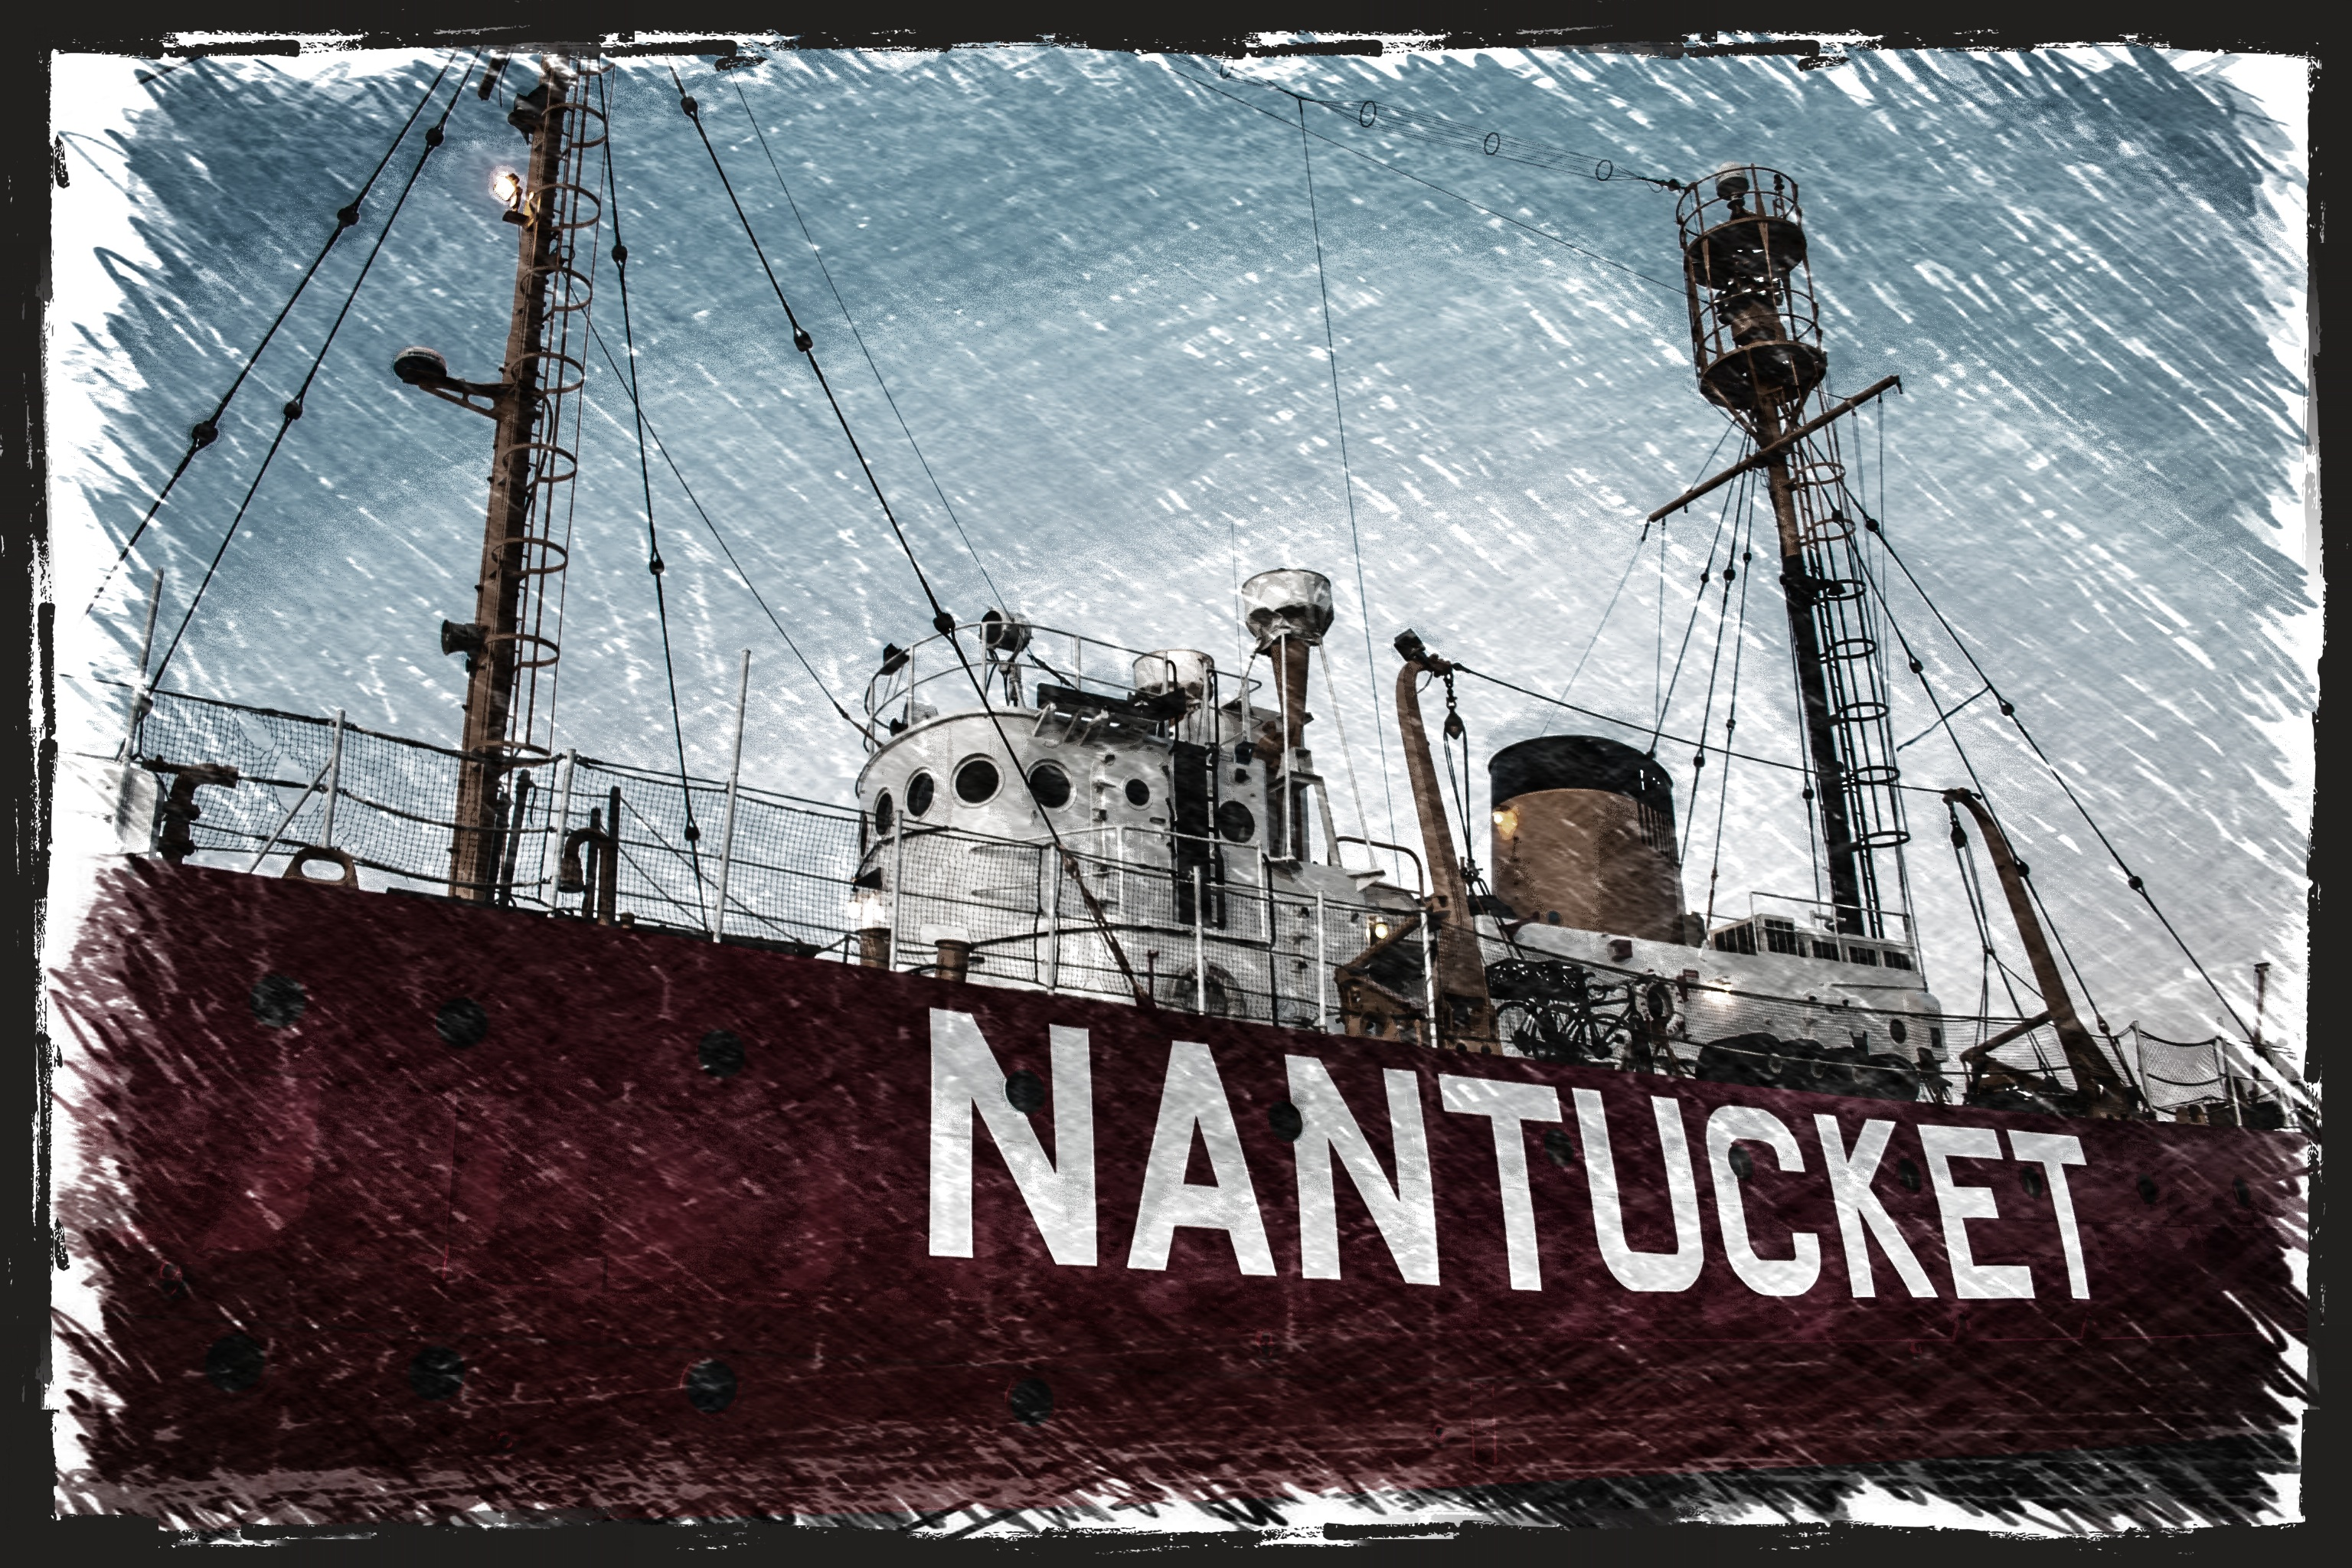 Nantucket Whaling Ship